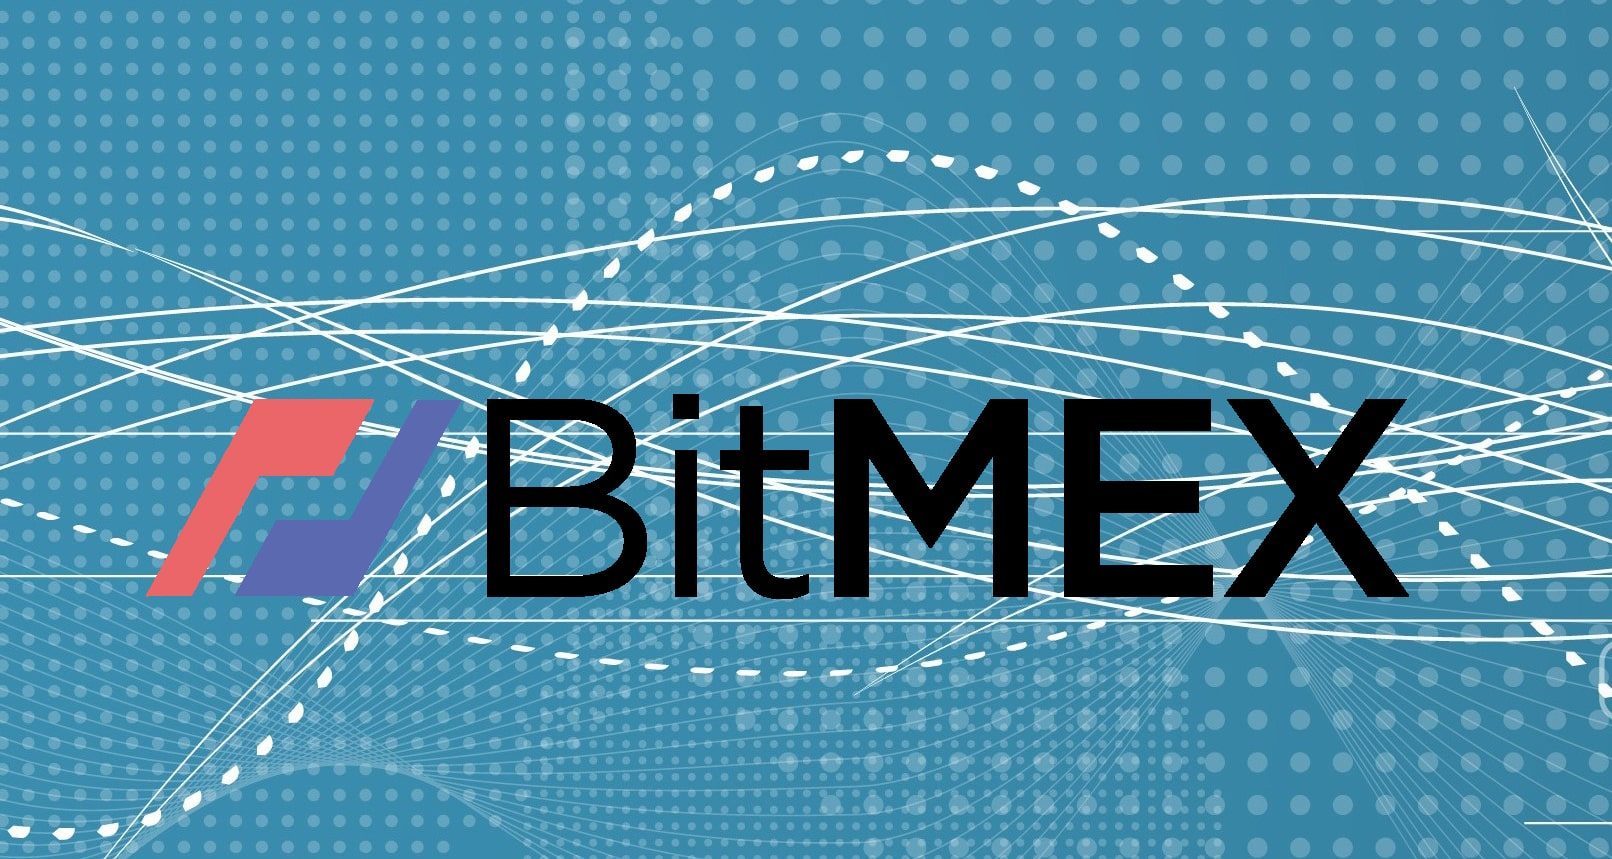 BitMEX vs US: Is the Conflict Over?